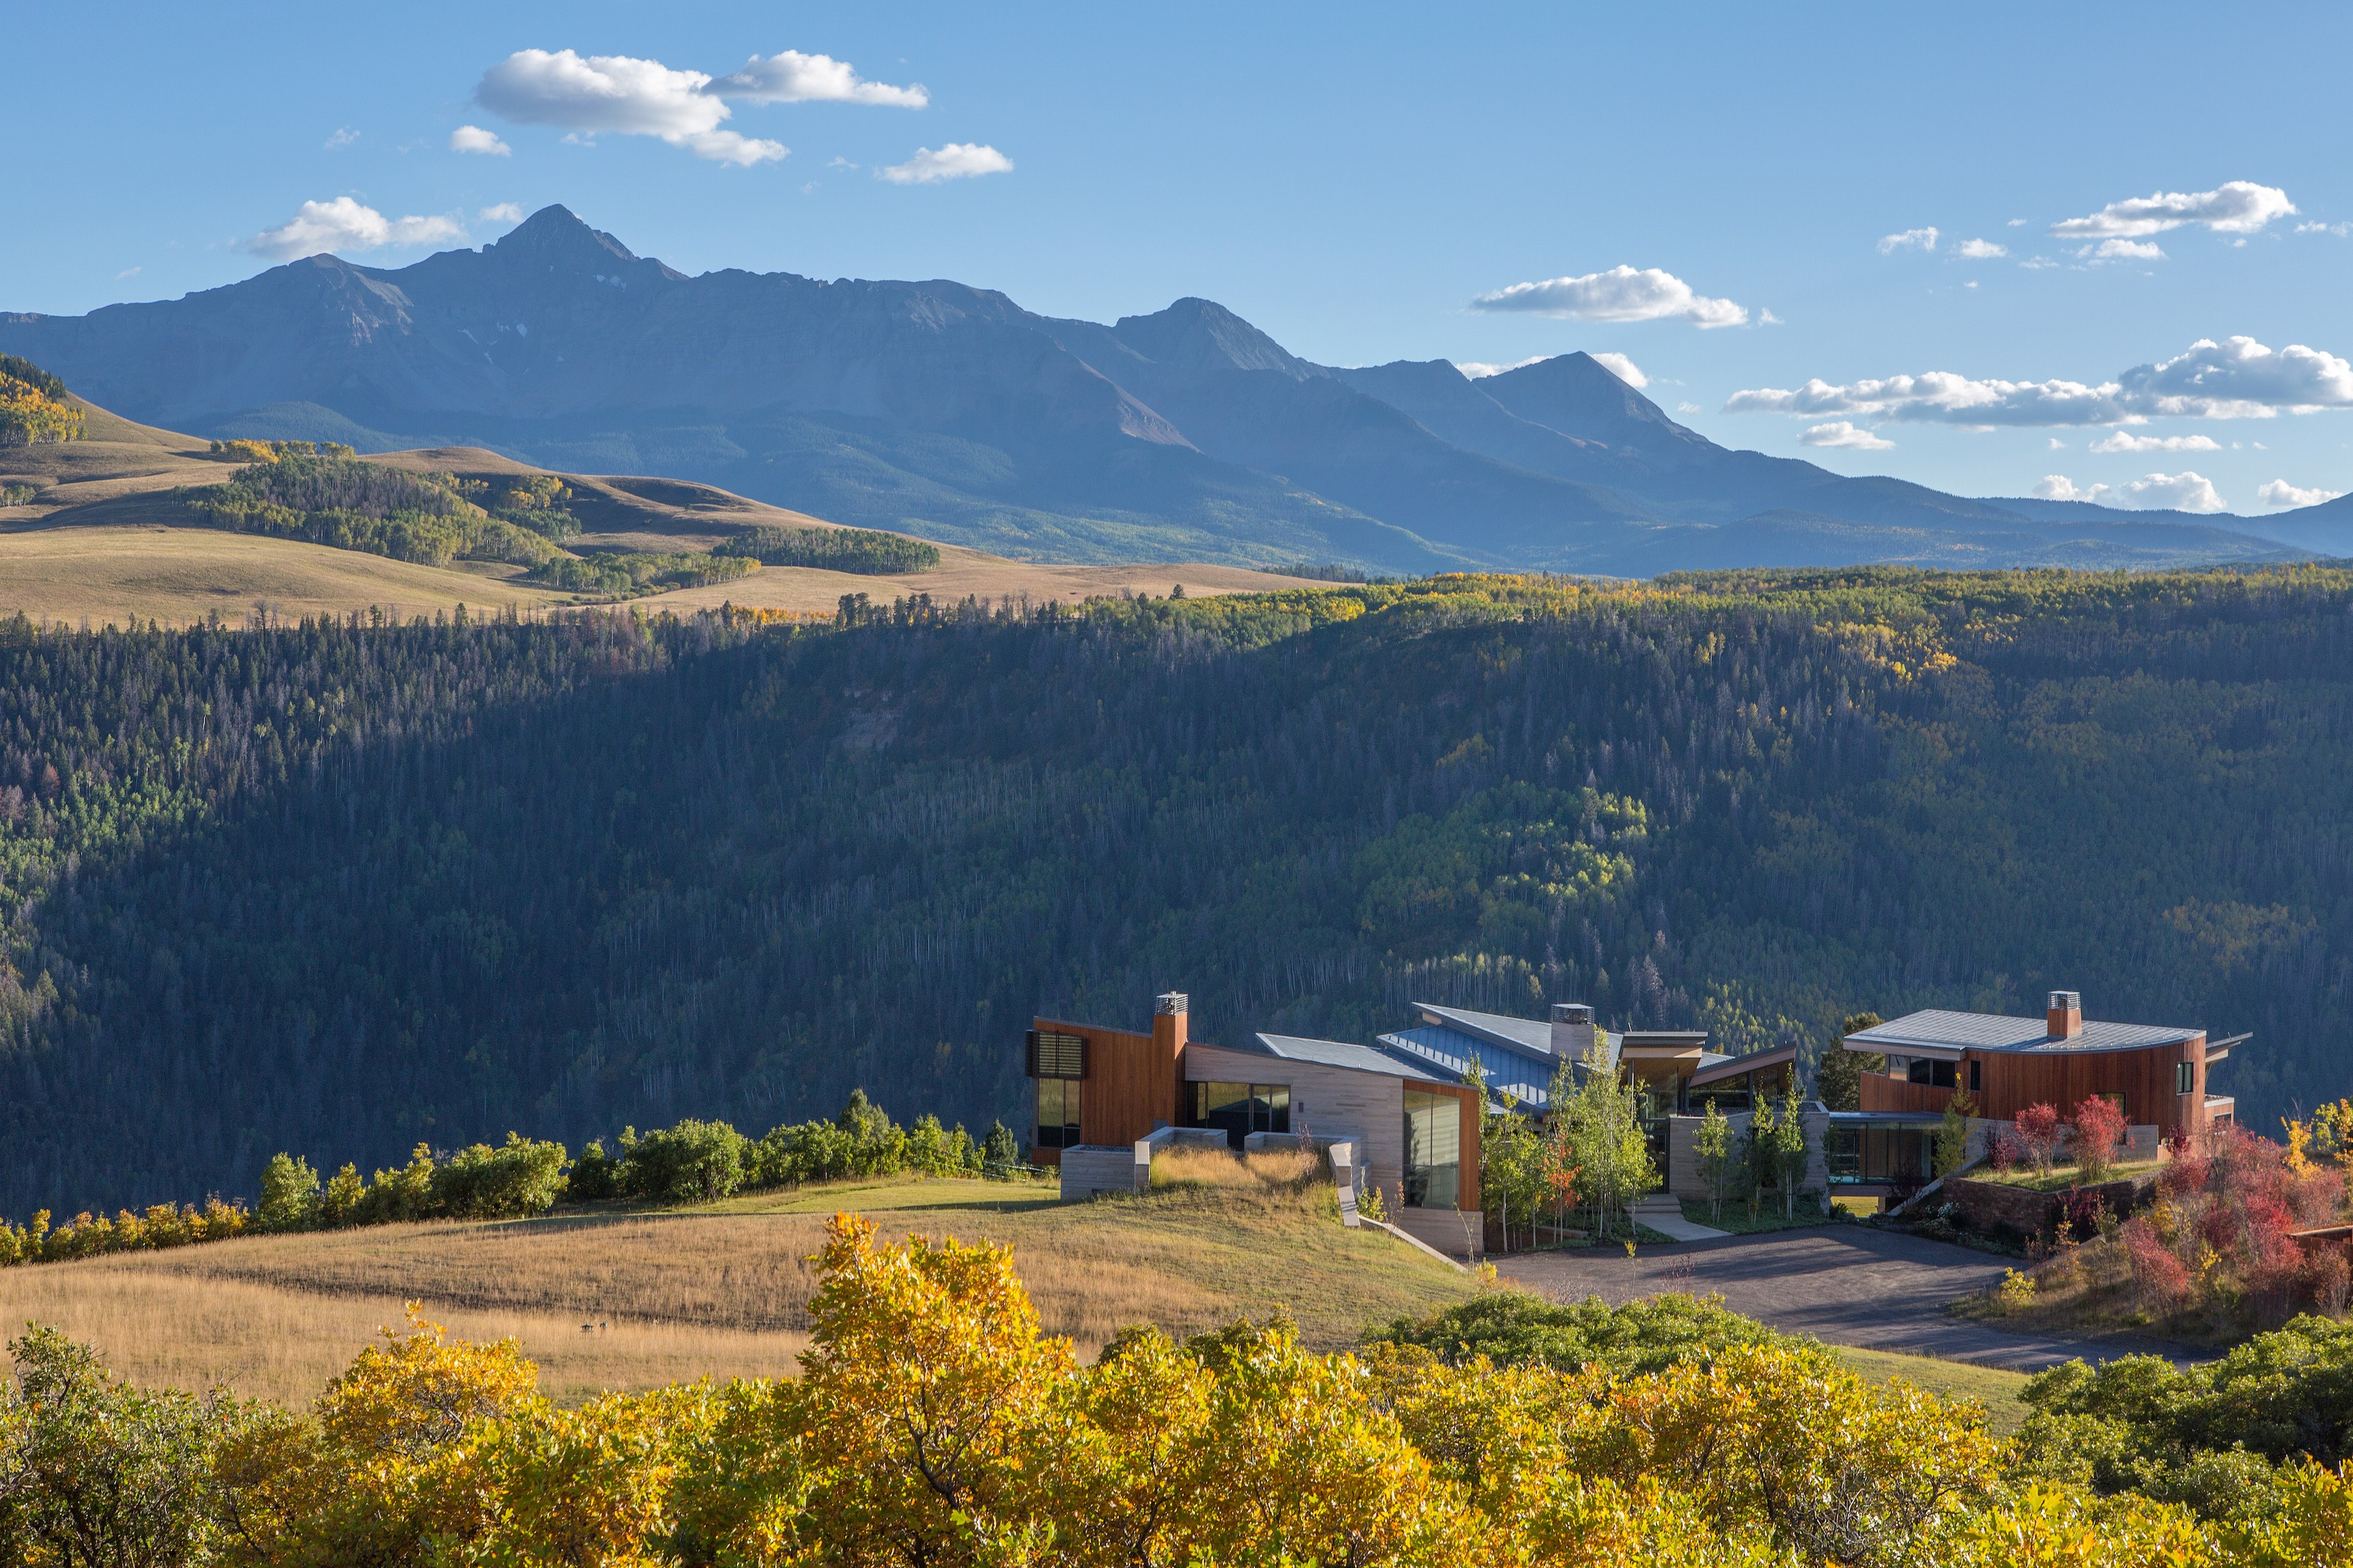 A $32.5 Million Glass House on the Edge of a Cliff in the Rocky Mountains